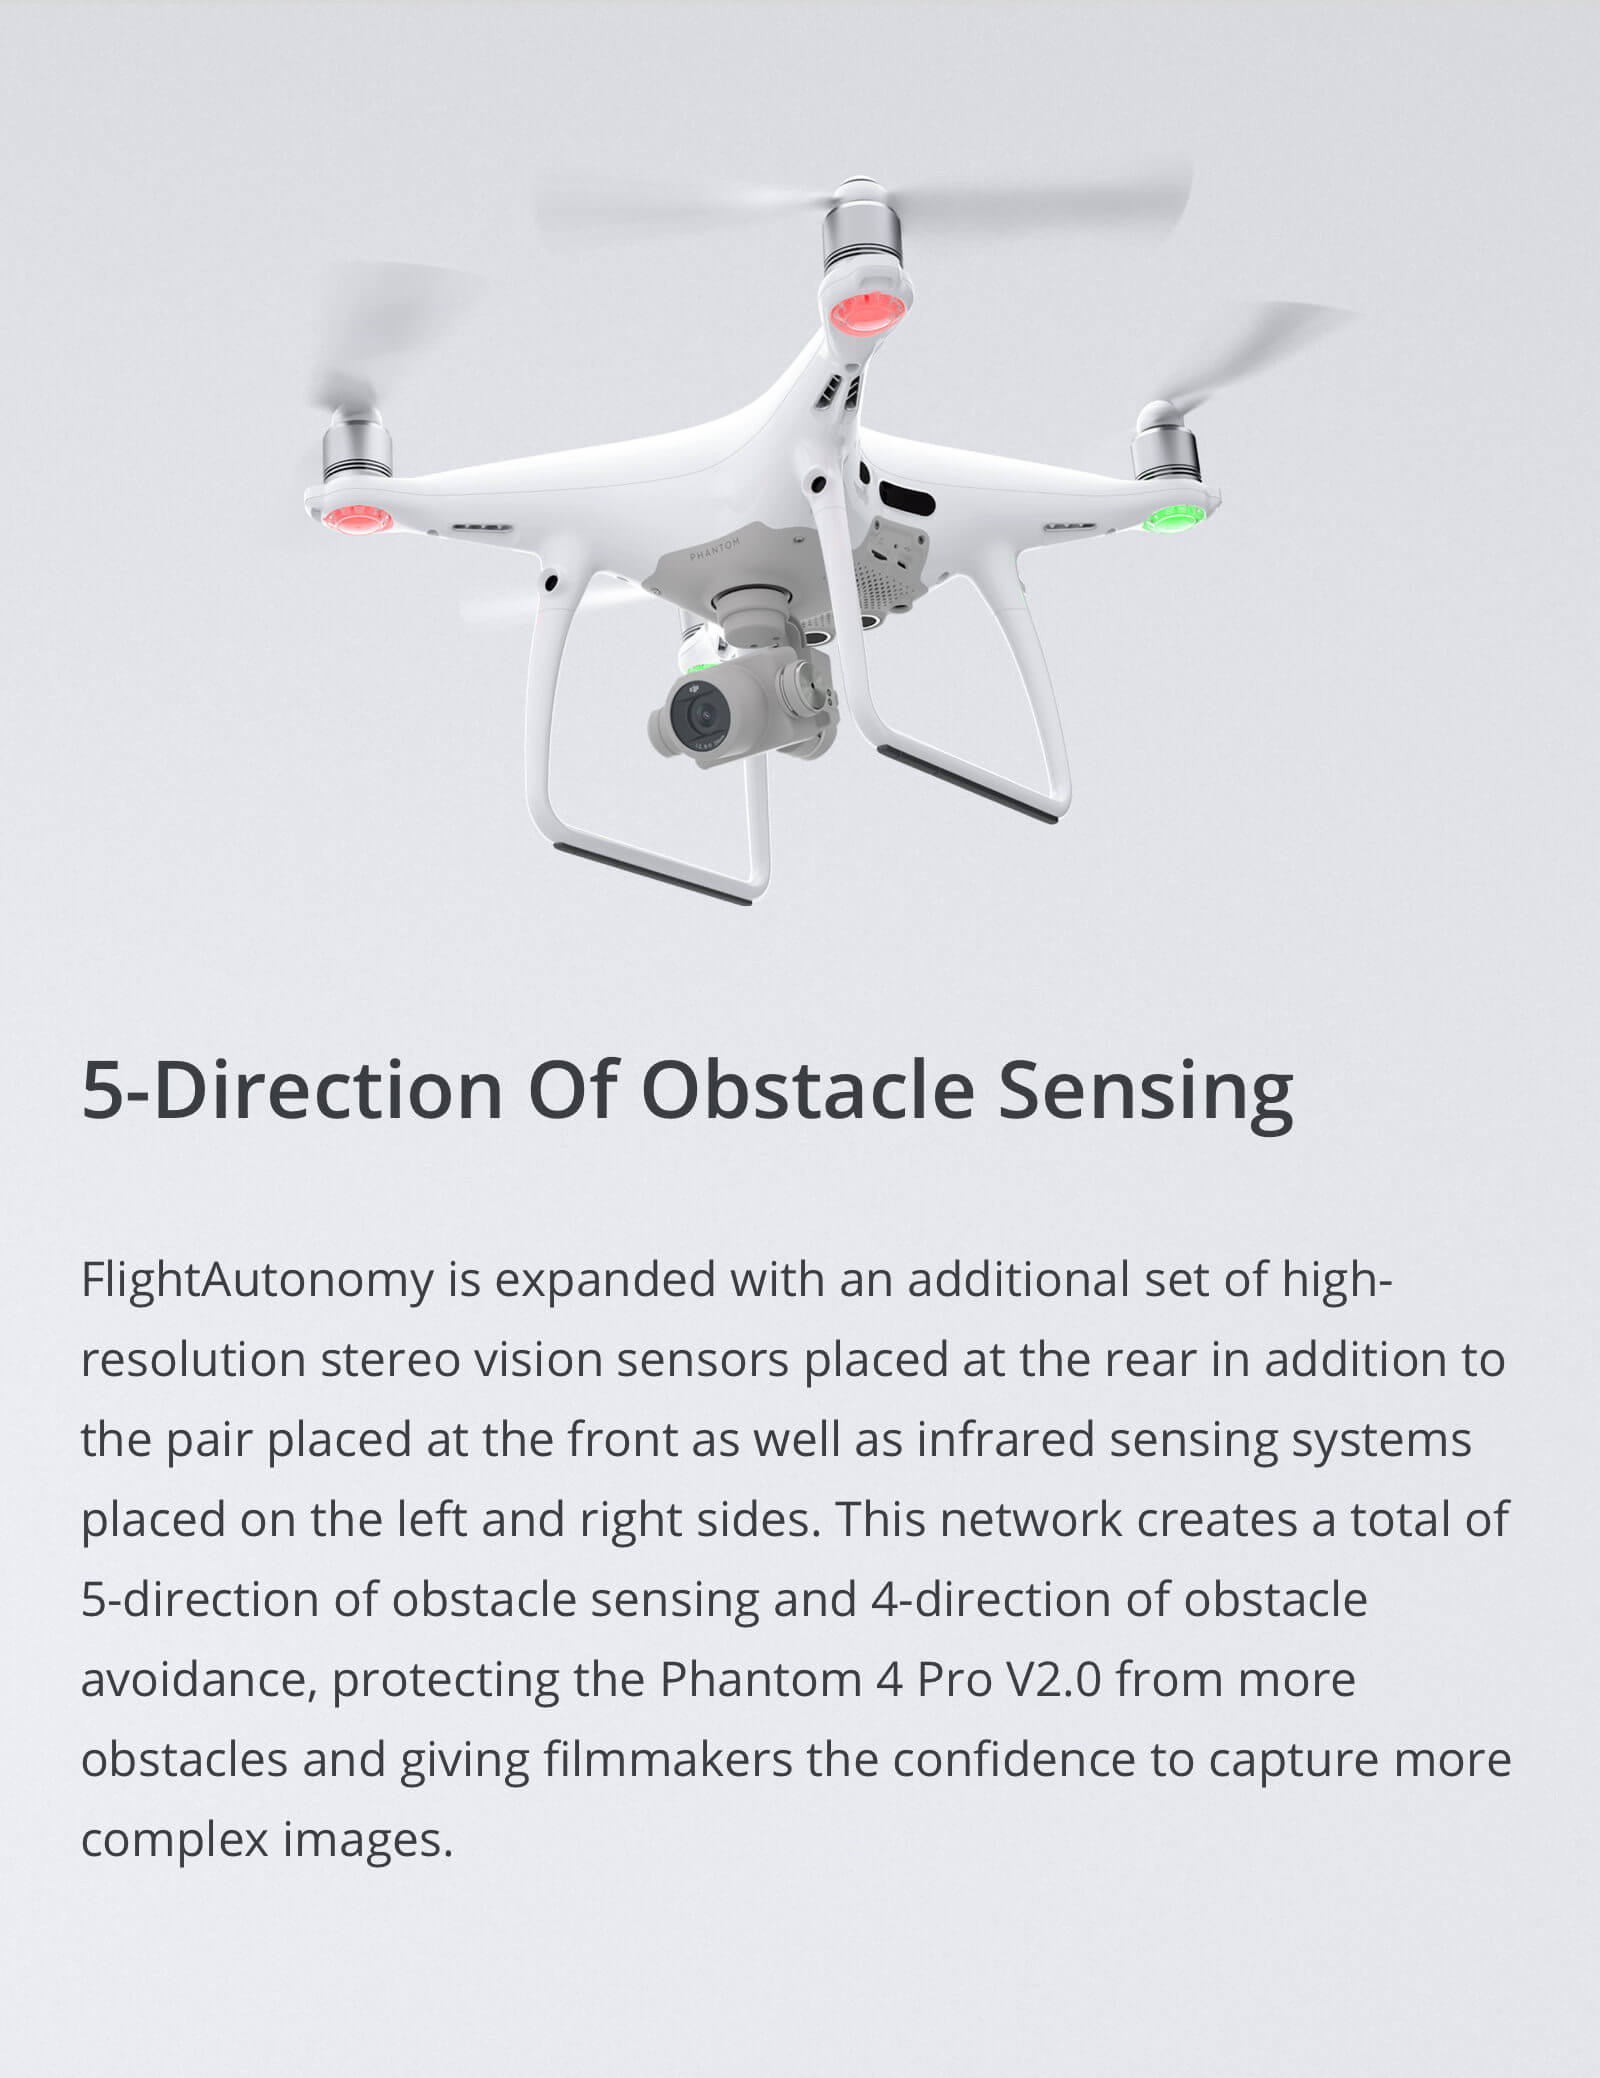 DJI Phantom 4 Pro V2.0 Obstacle Avoidance